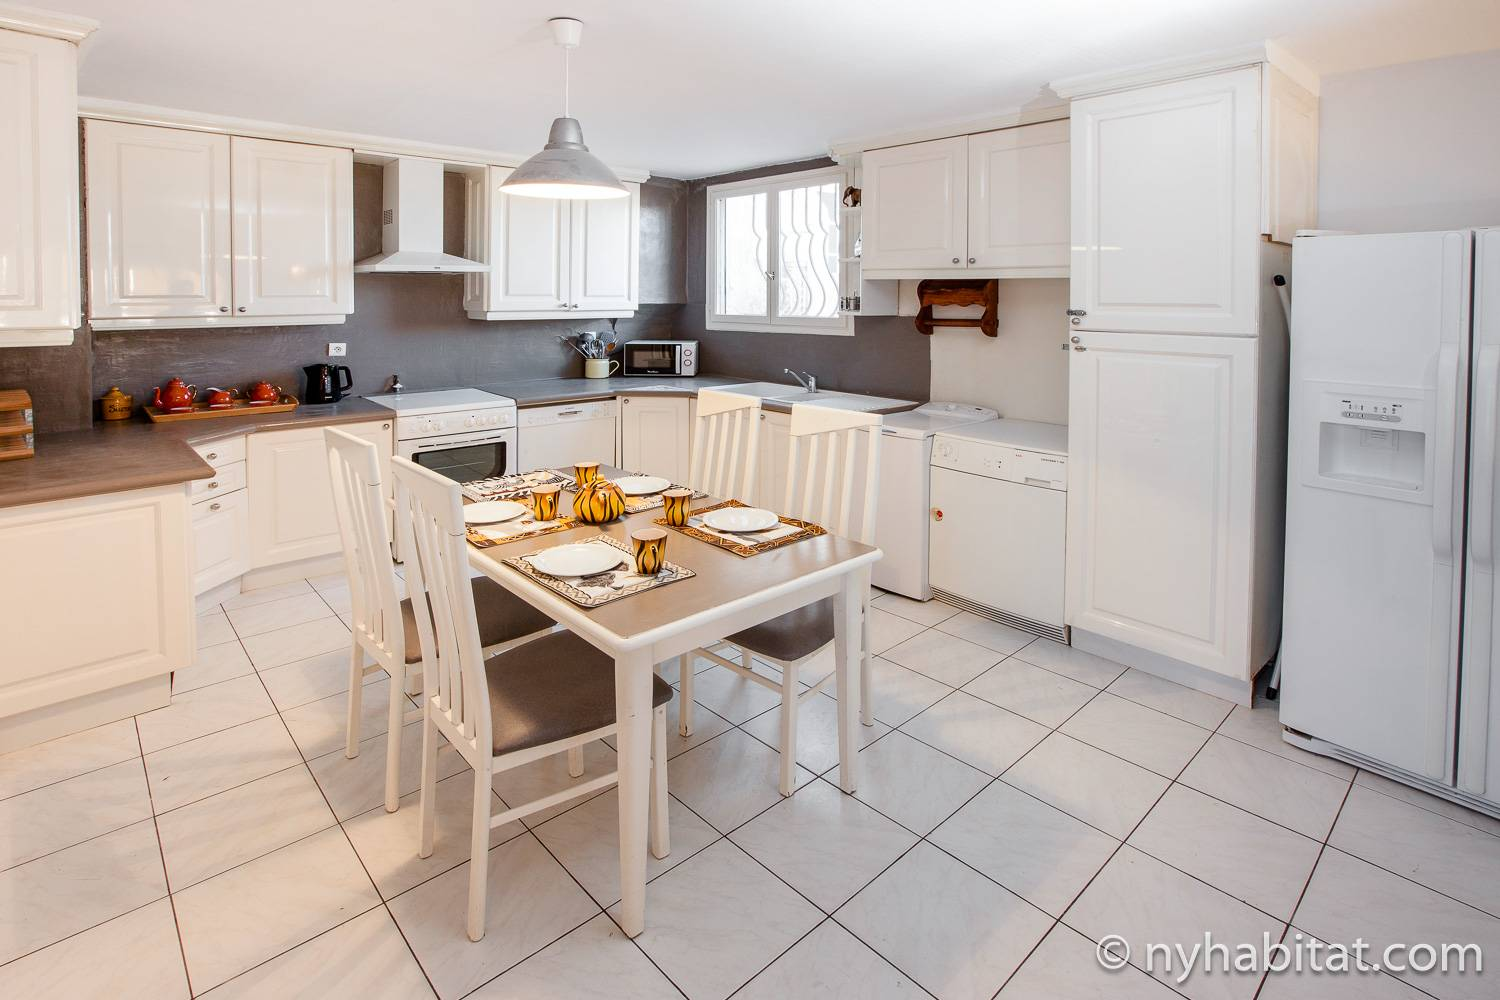 Image of kitchen in PR-1170 with dining table and white cabinets.